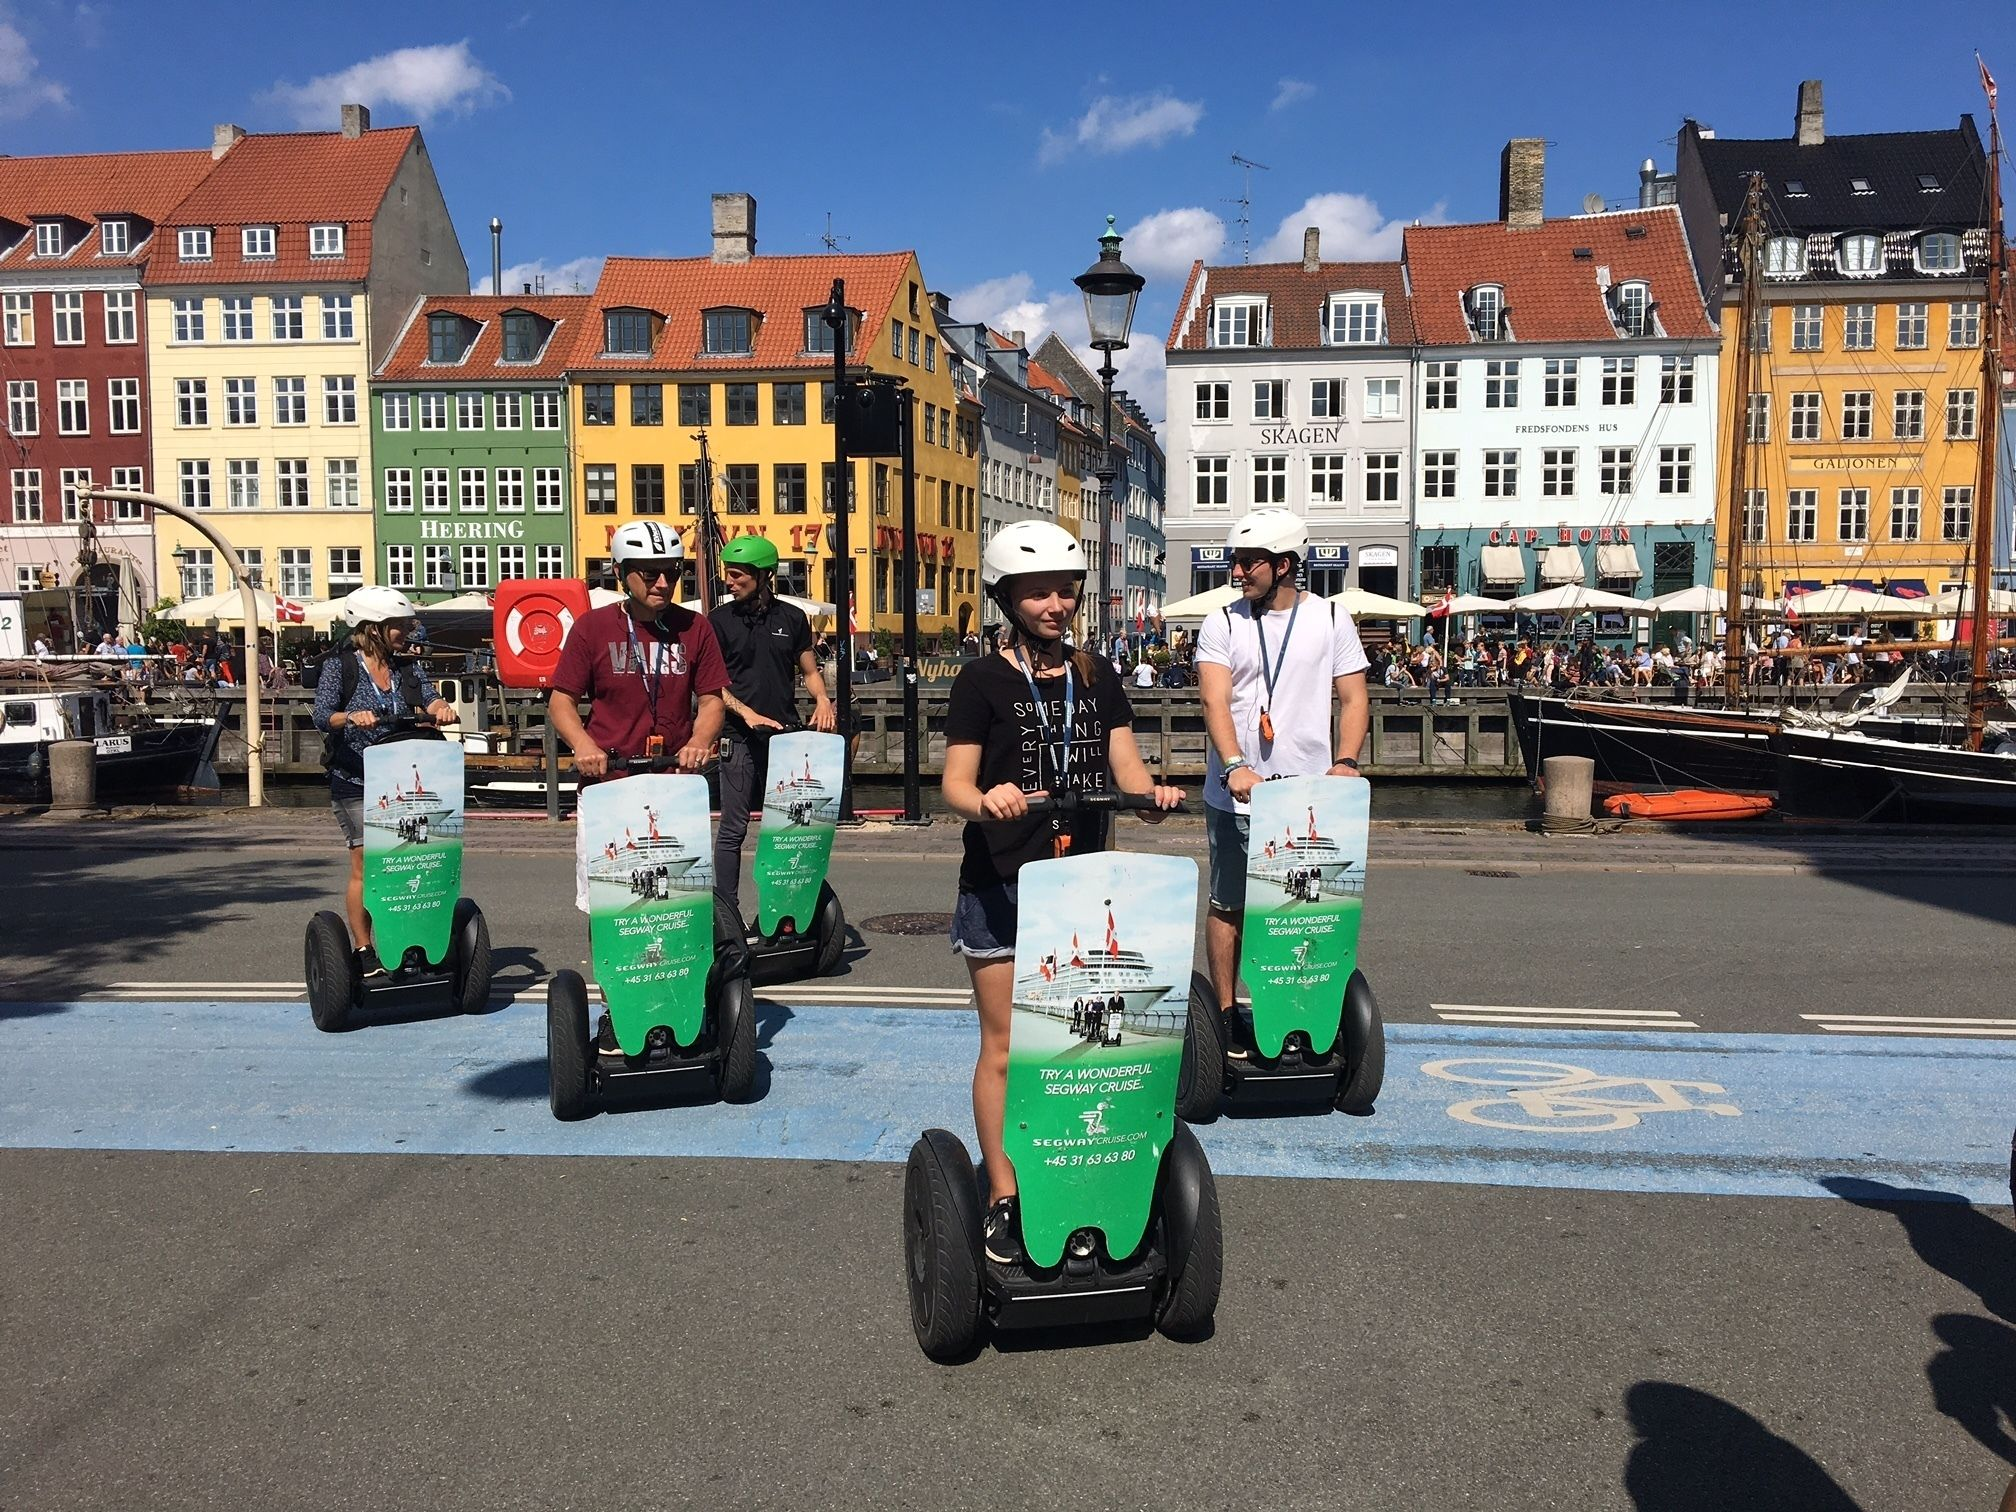 Segway tour of the streets of Copenhagen